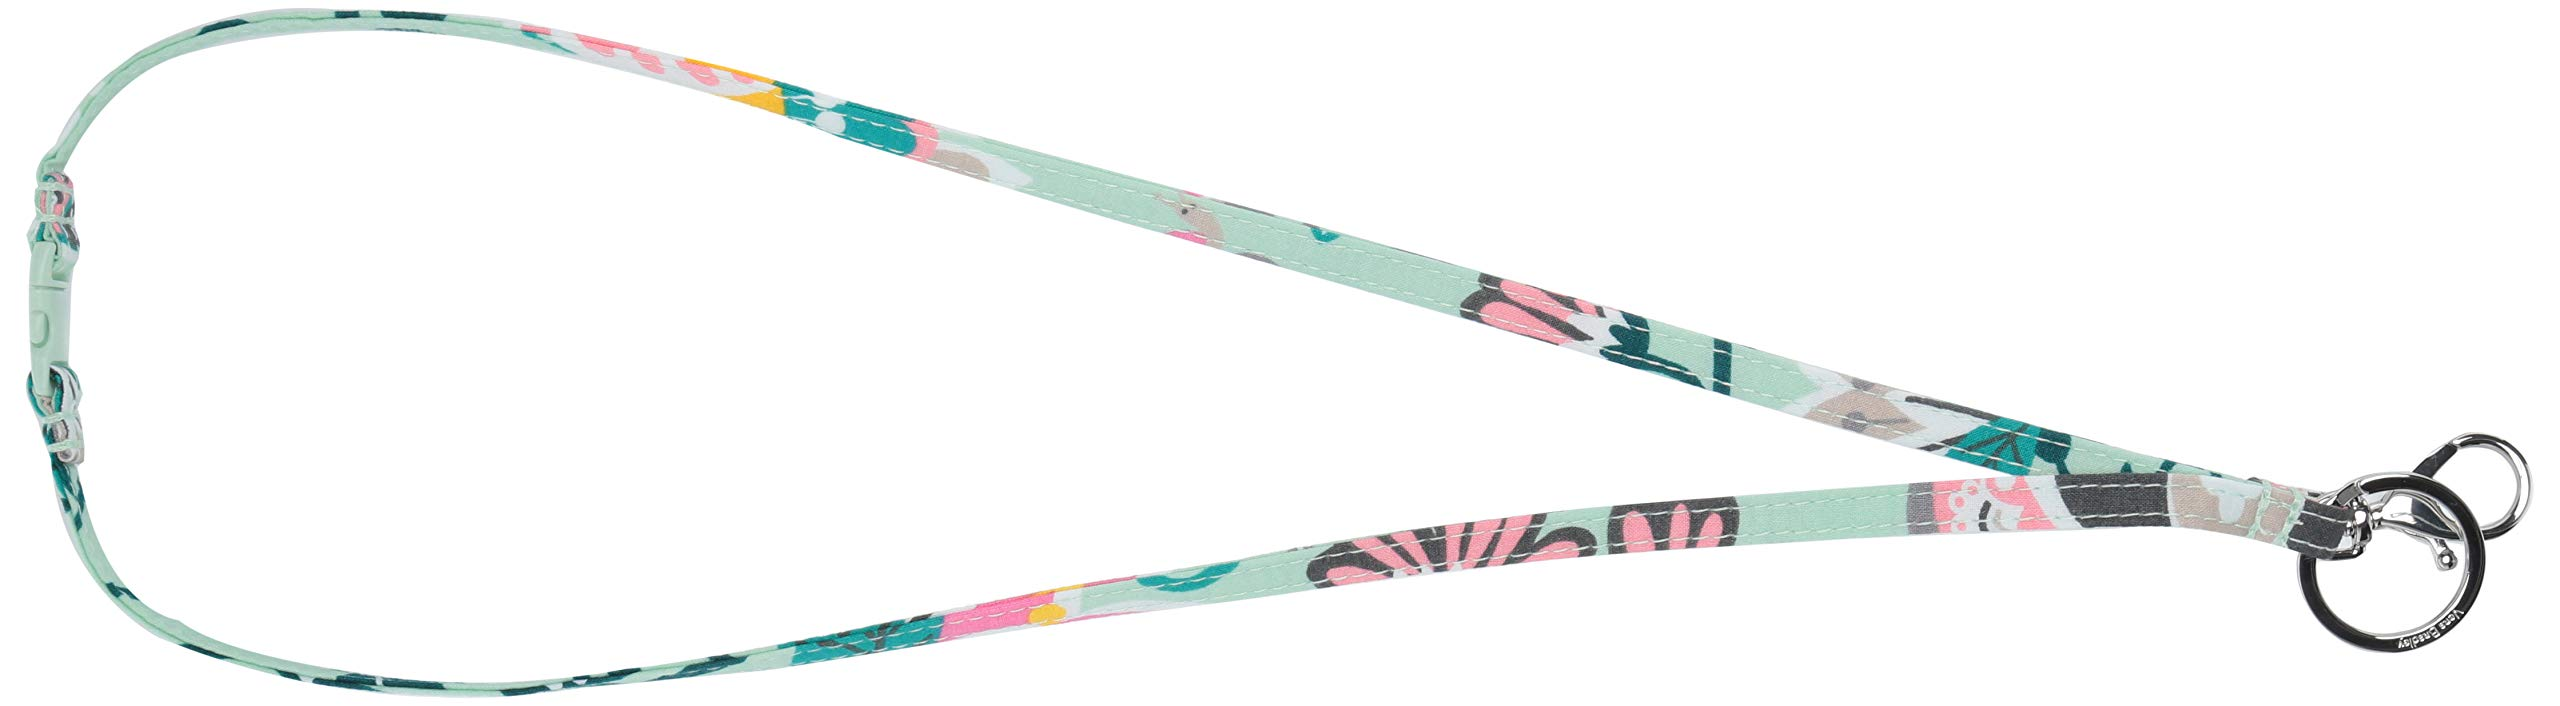 Vera Bradley Iconic Breakaway Lanyard, Signature Cotton, Mint Flowers